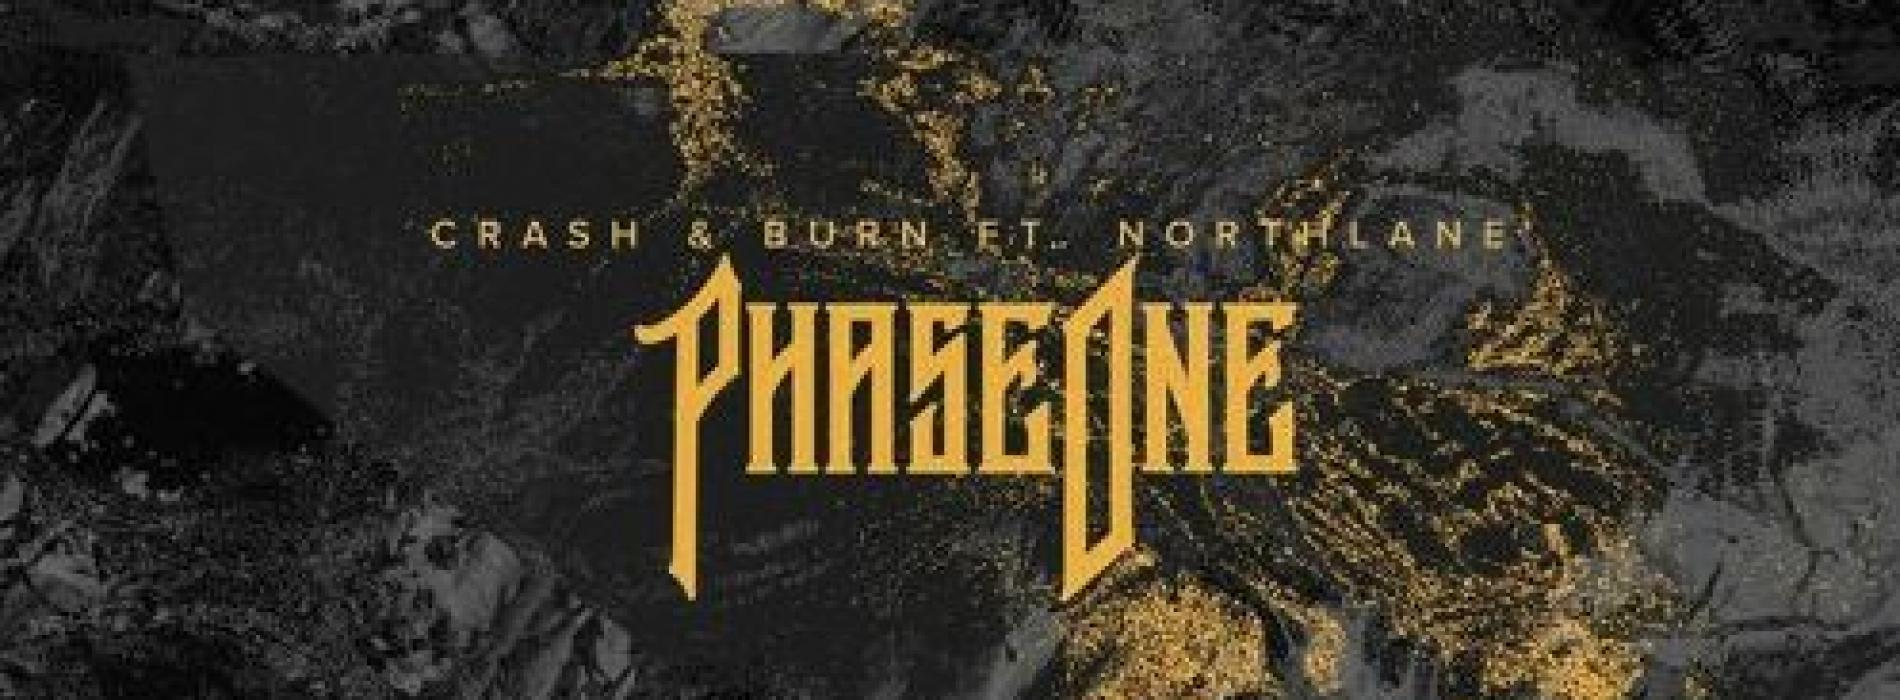 New Music : PHASEONE – Crash & Burn Ft Northlane (OZYRIZ Remix)